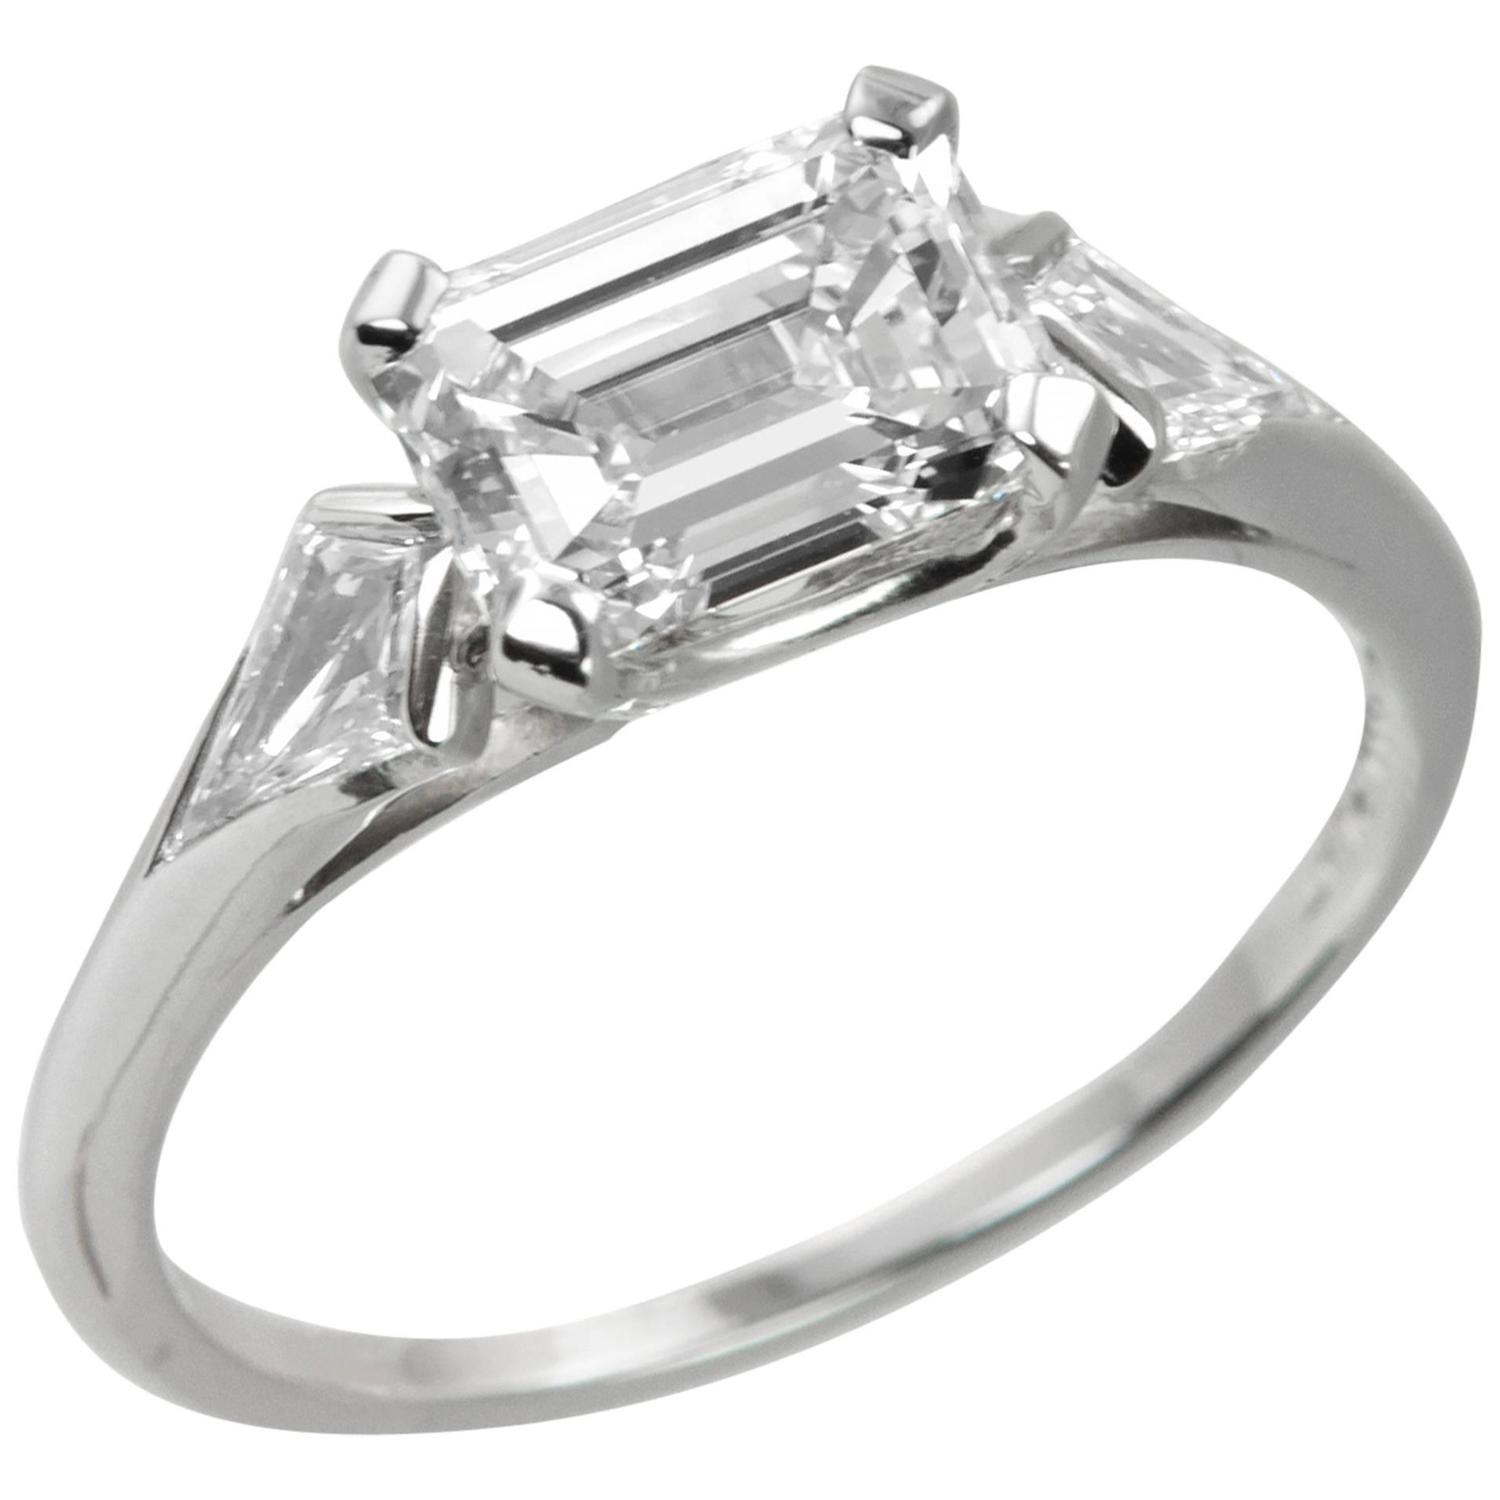 1950s Emerald Cut 1 32 Carat Diamond Platinum Engagement Ring at 1stdibs